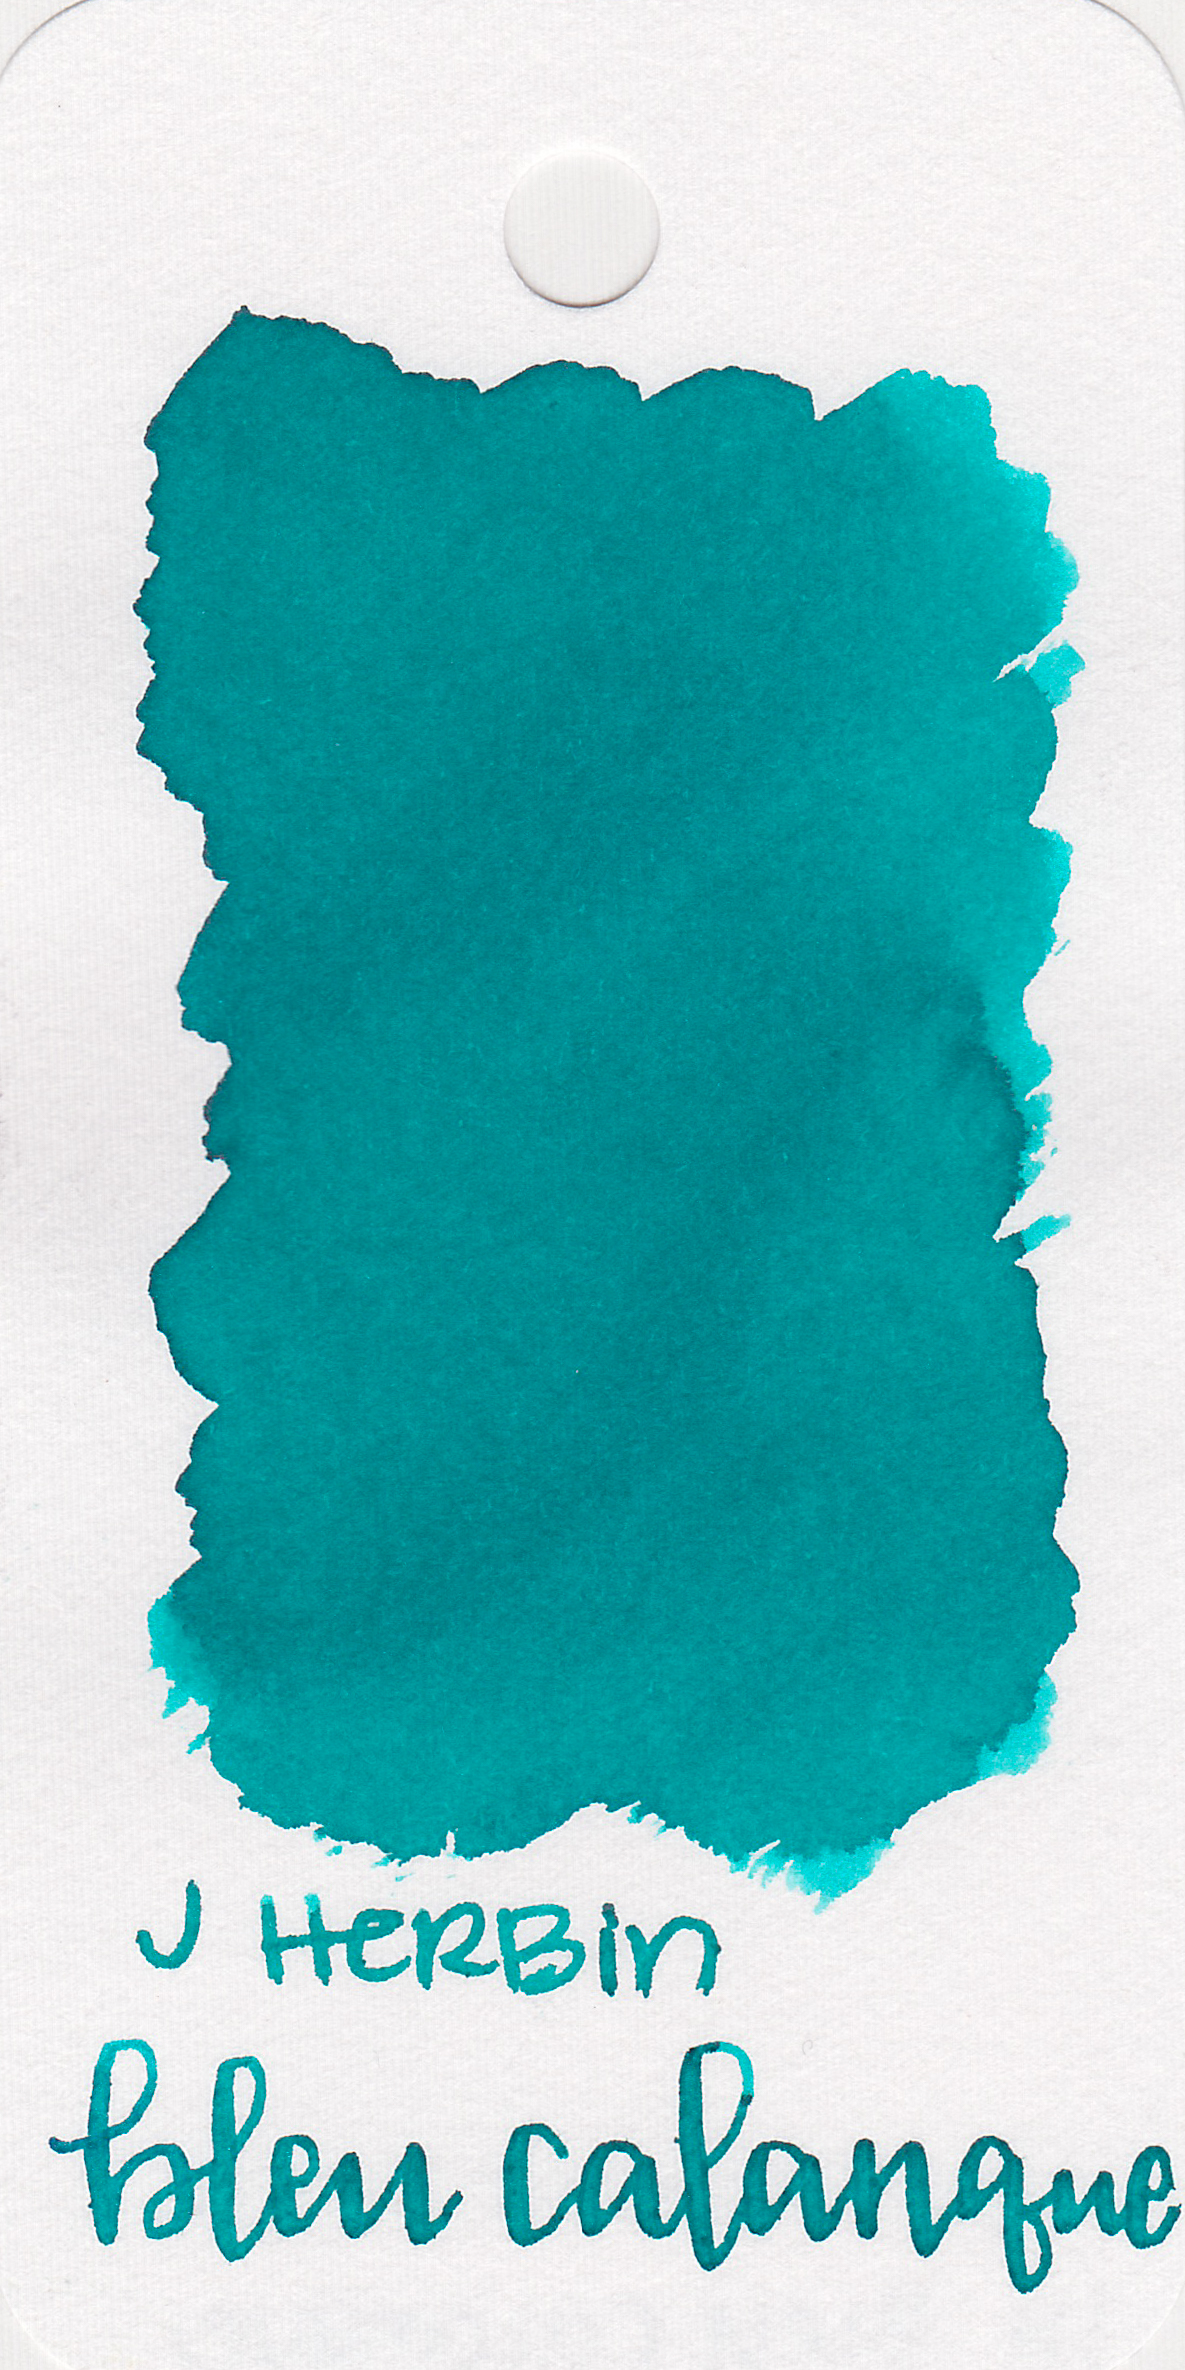 The color: - Bleu Calanque is a beautiful blue-green, not quite a full teal, but not just blue either.